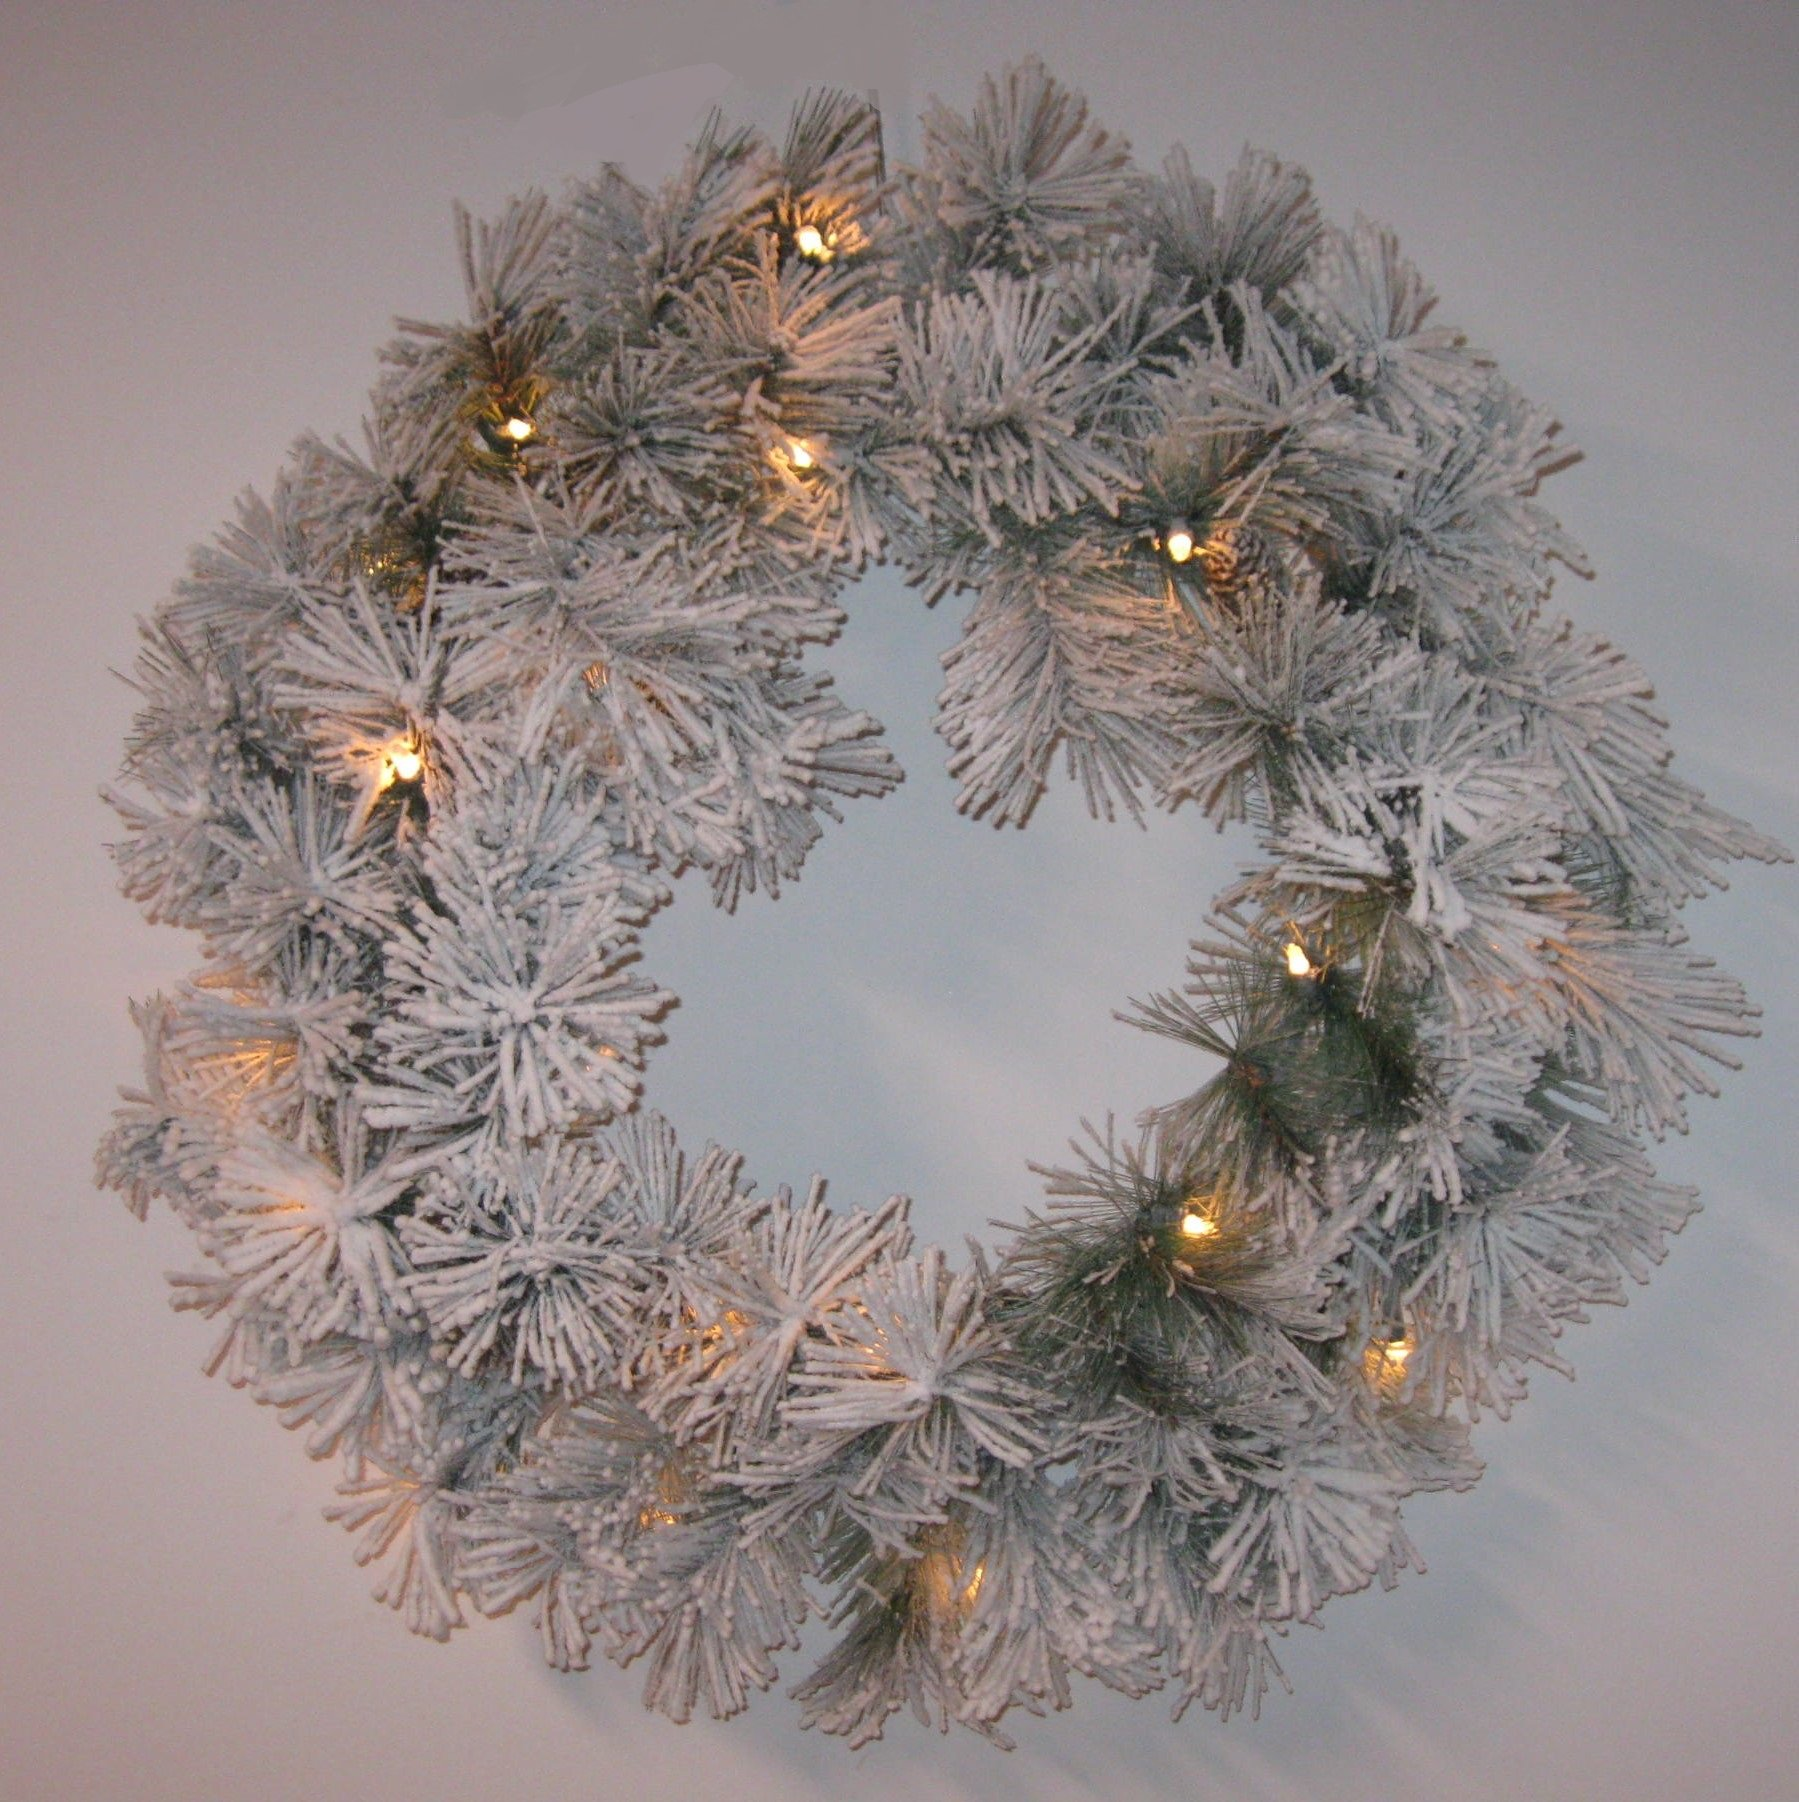 lighted christmas snow flocked wreath with pine branches with pinecone accents